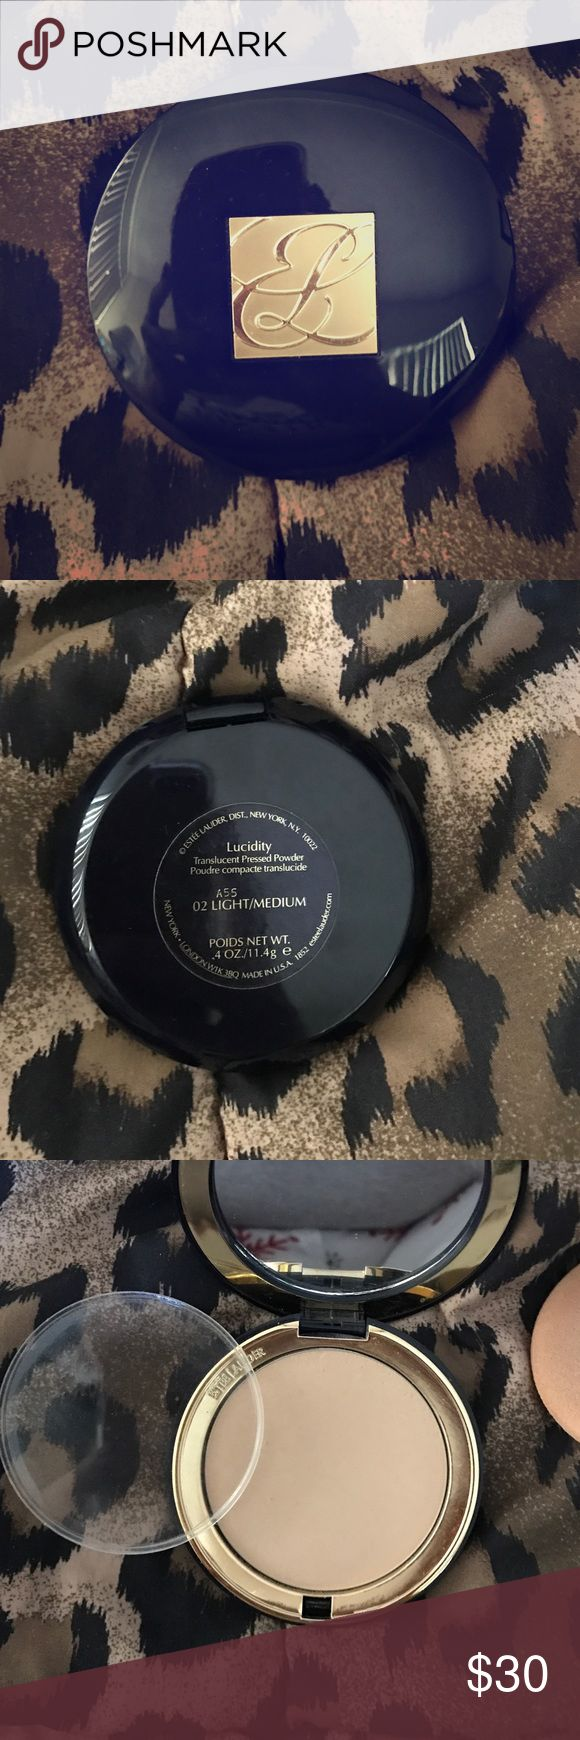 Estée Lauder Lucidity Pressed Powder 👠 NEW! Estée Lauder Translucent Pressed Powder ( Lucidity) A55 Light/ Medium/ Used 2-3x / Perfect Condition/ Will need another sponge / Clean/ Fast Shipping ✈️/ Send Offer Estee Lauder Makeup Face Powder